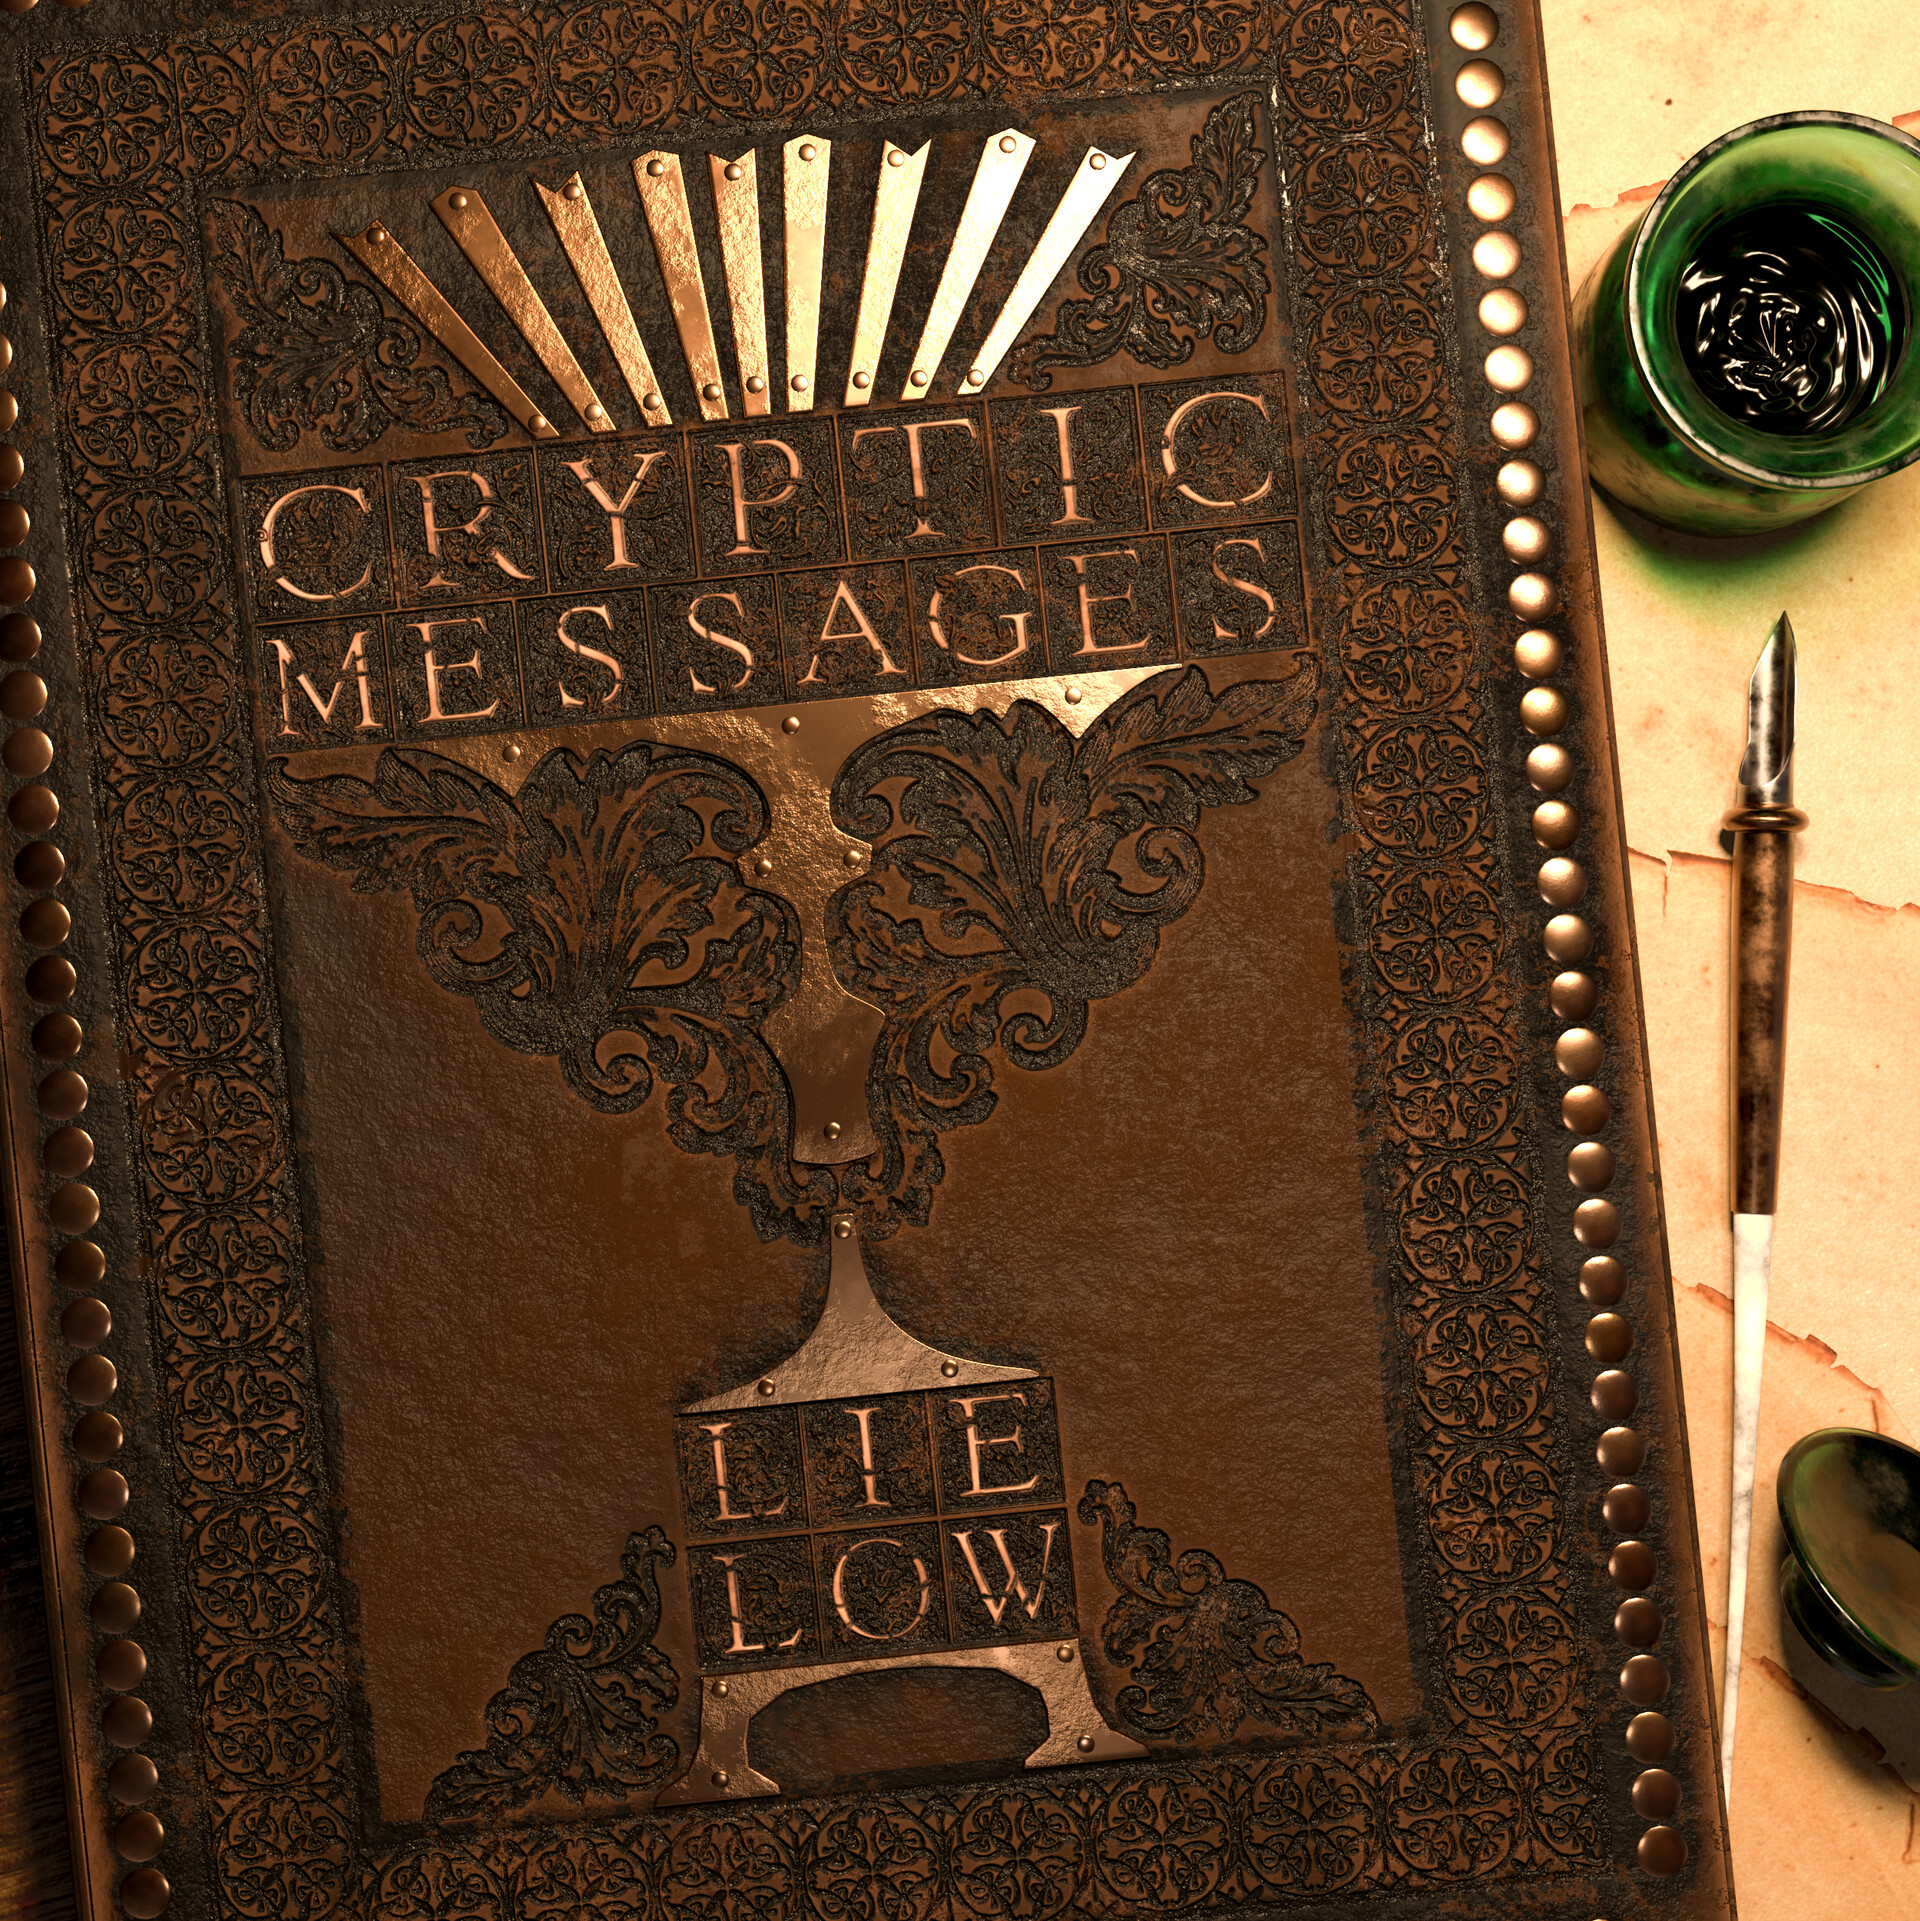 Colby custer book 19 diffusebook newtexture